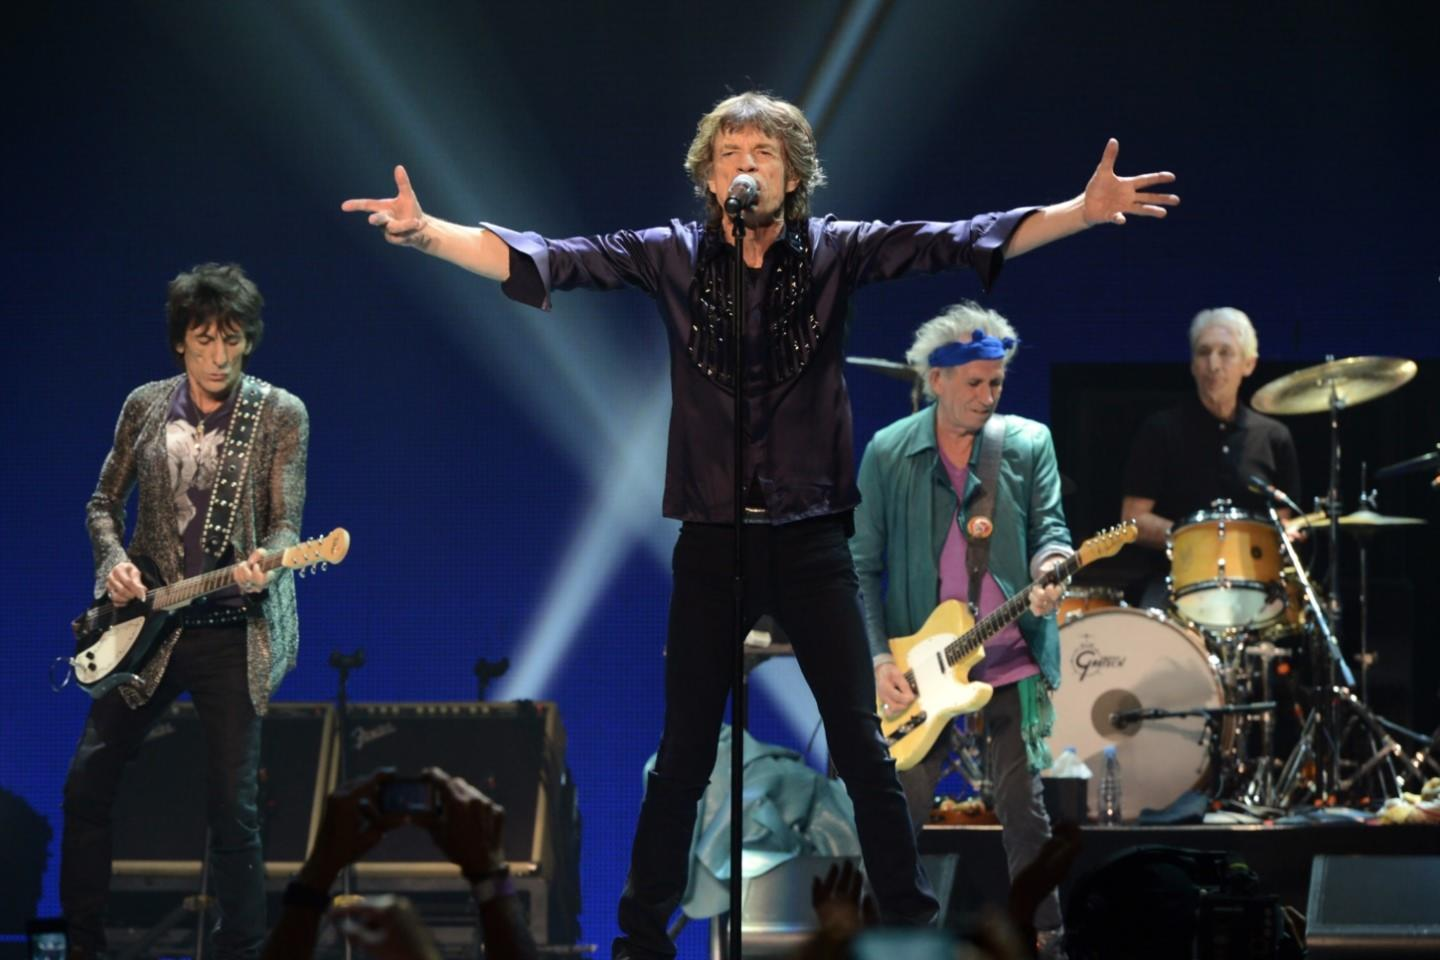 Rolling Stones Us Tour 2020 Rolling Stones Tickets | Rolling Stones Tour Dates 2019 and